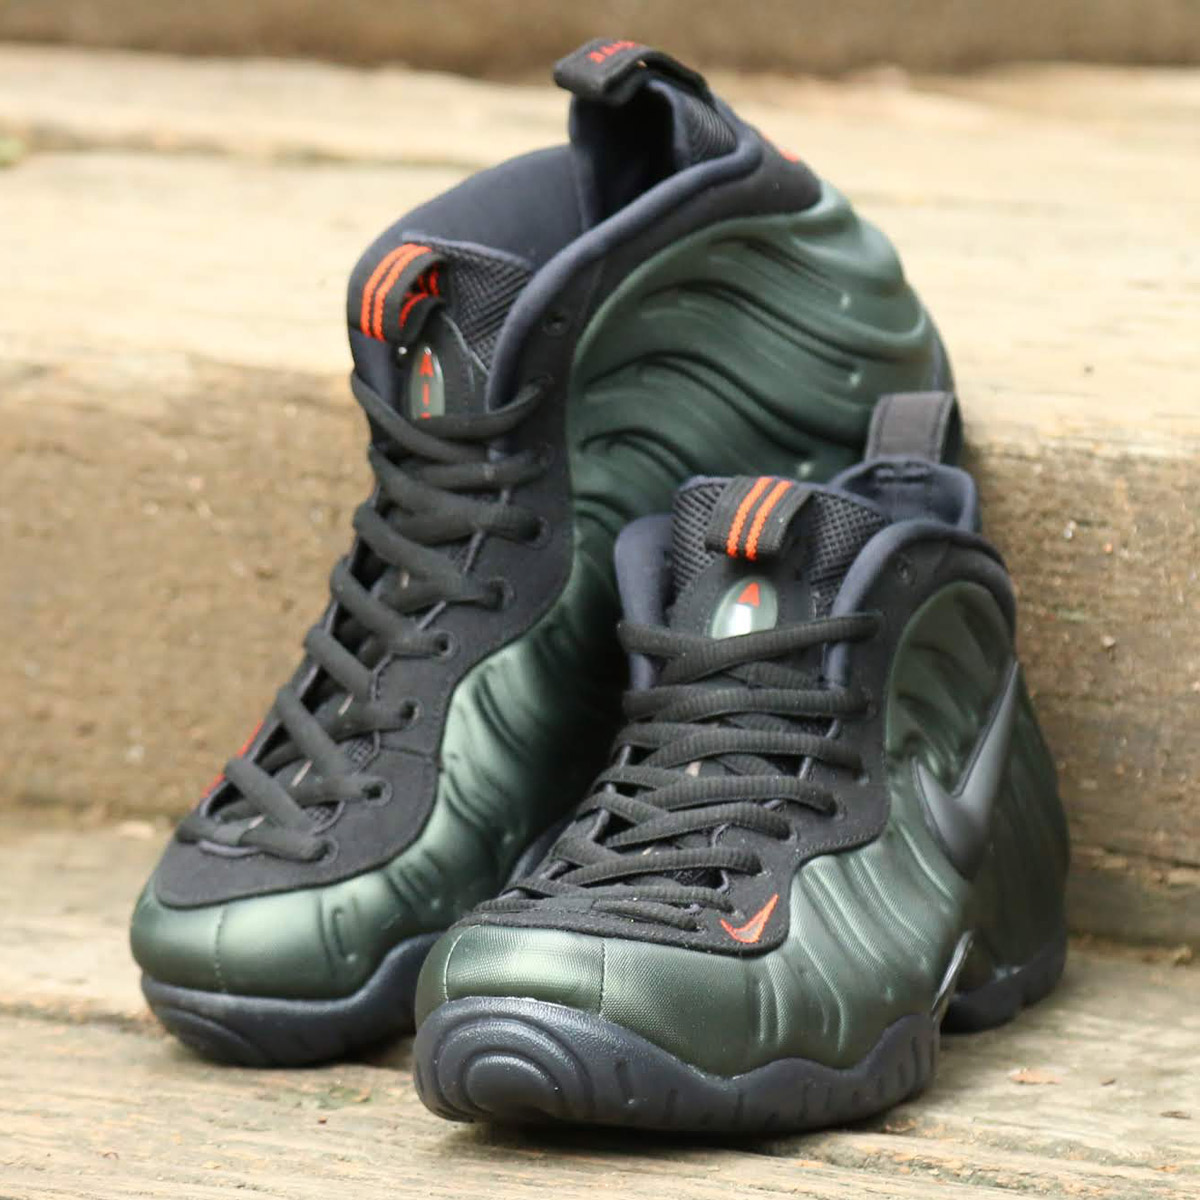 5f44b6f17e1 ... 624041 304 1ad50 2e63b  sweden nike air foamposite pro sequoia black  team orange 18aw s eb54f bbbf1